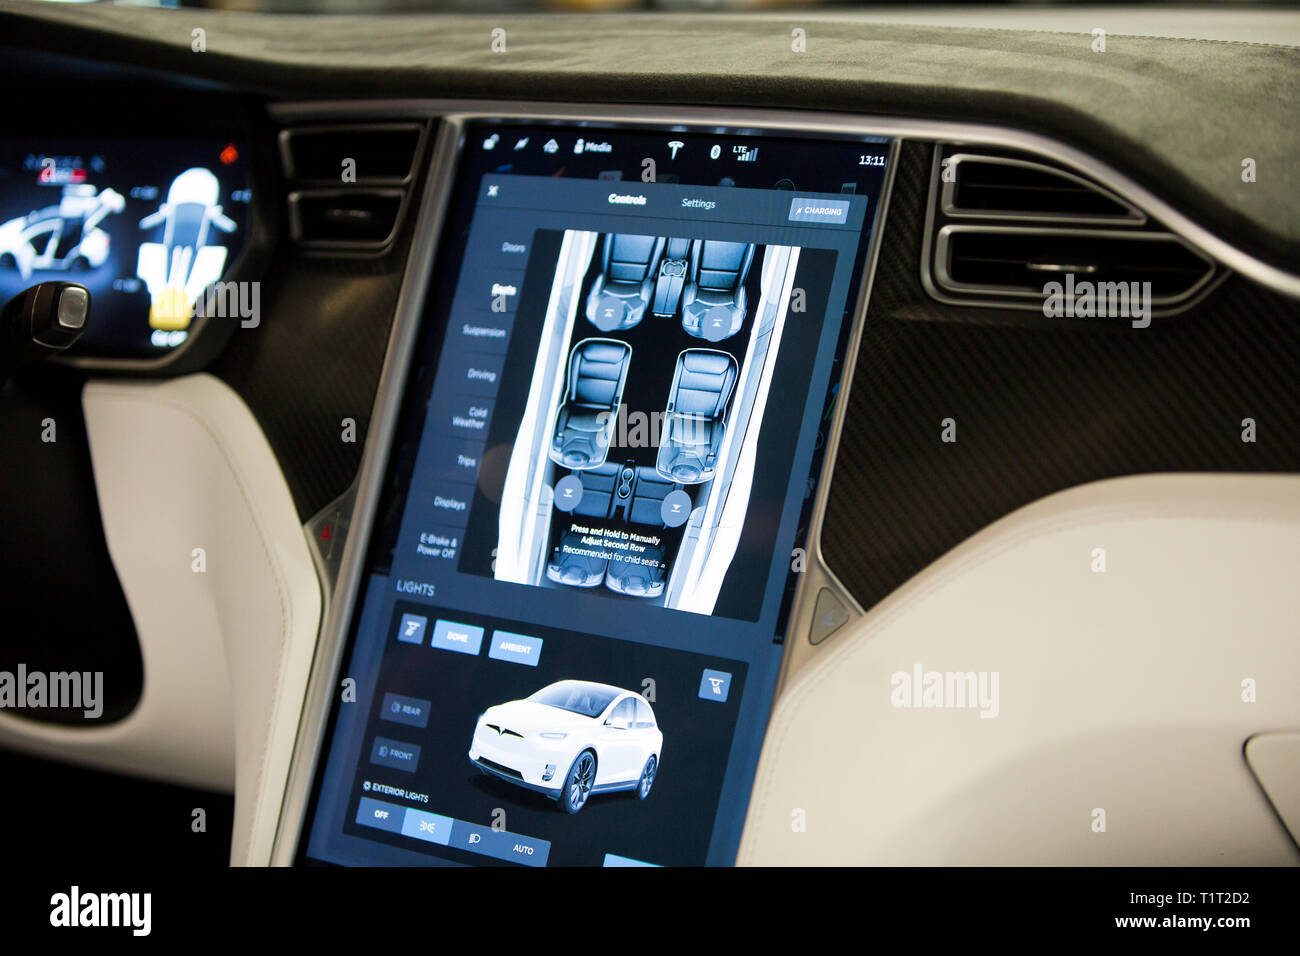 HELSINKI, FINLAND - NOVEMBER 04, 2016: The interior of a Tesla Model X electric car with large touch screen dashboard.  remote control. - Stock Image